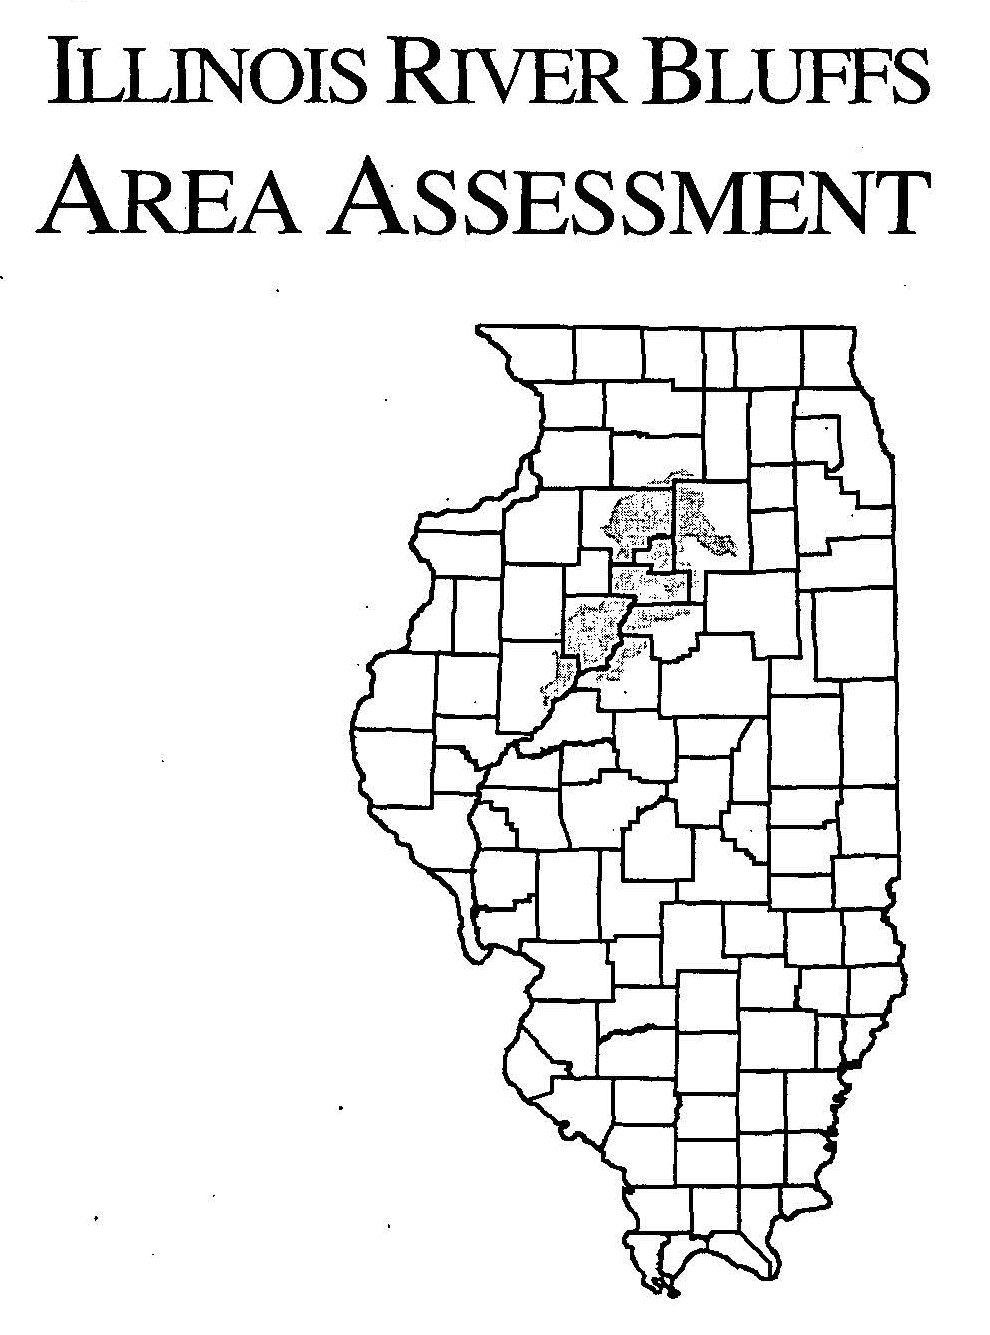 Illinois River Bluffs Area Assessment, 2001 cover